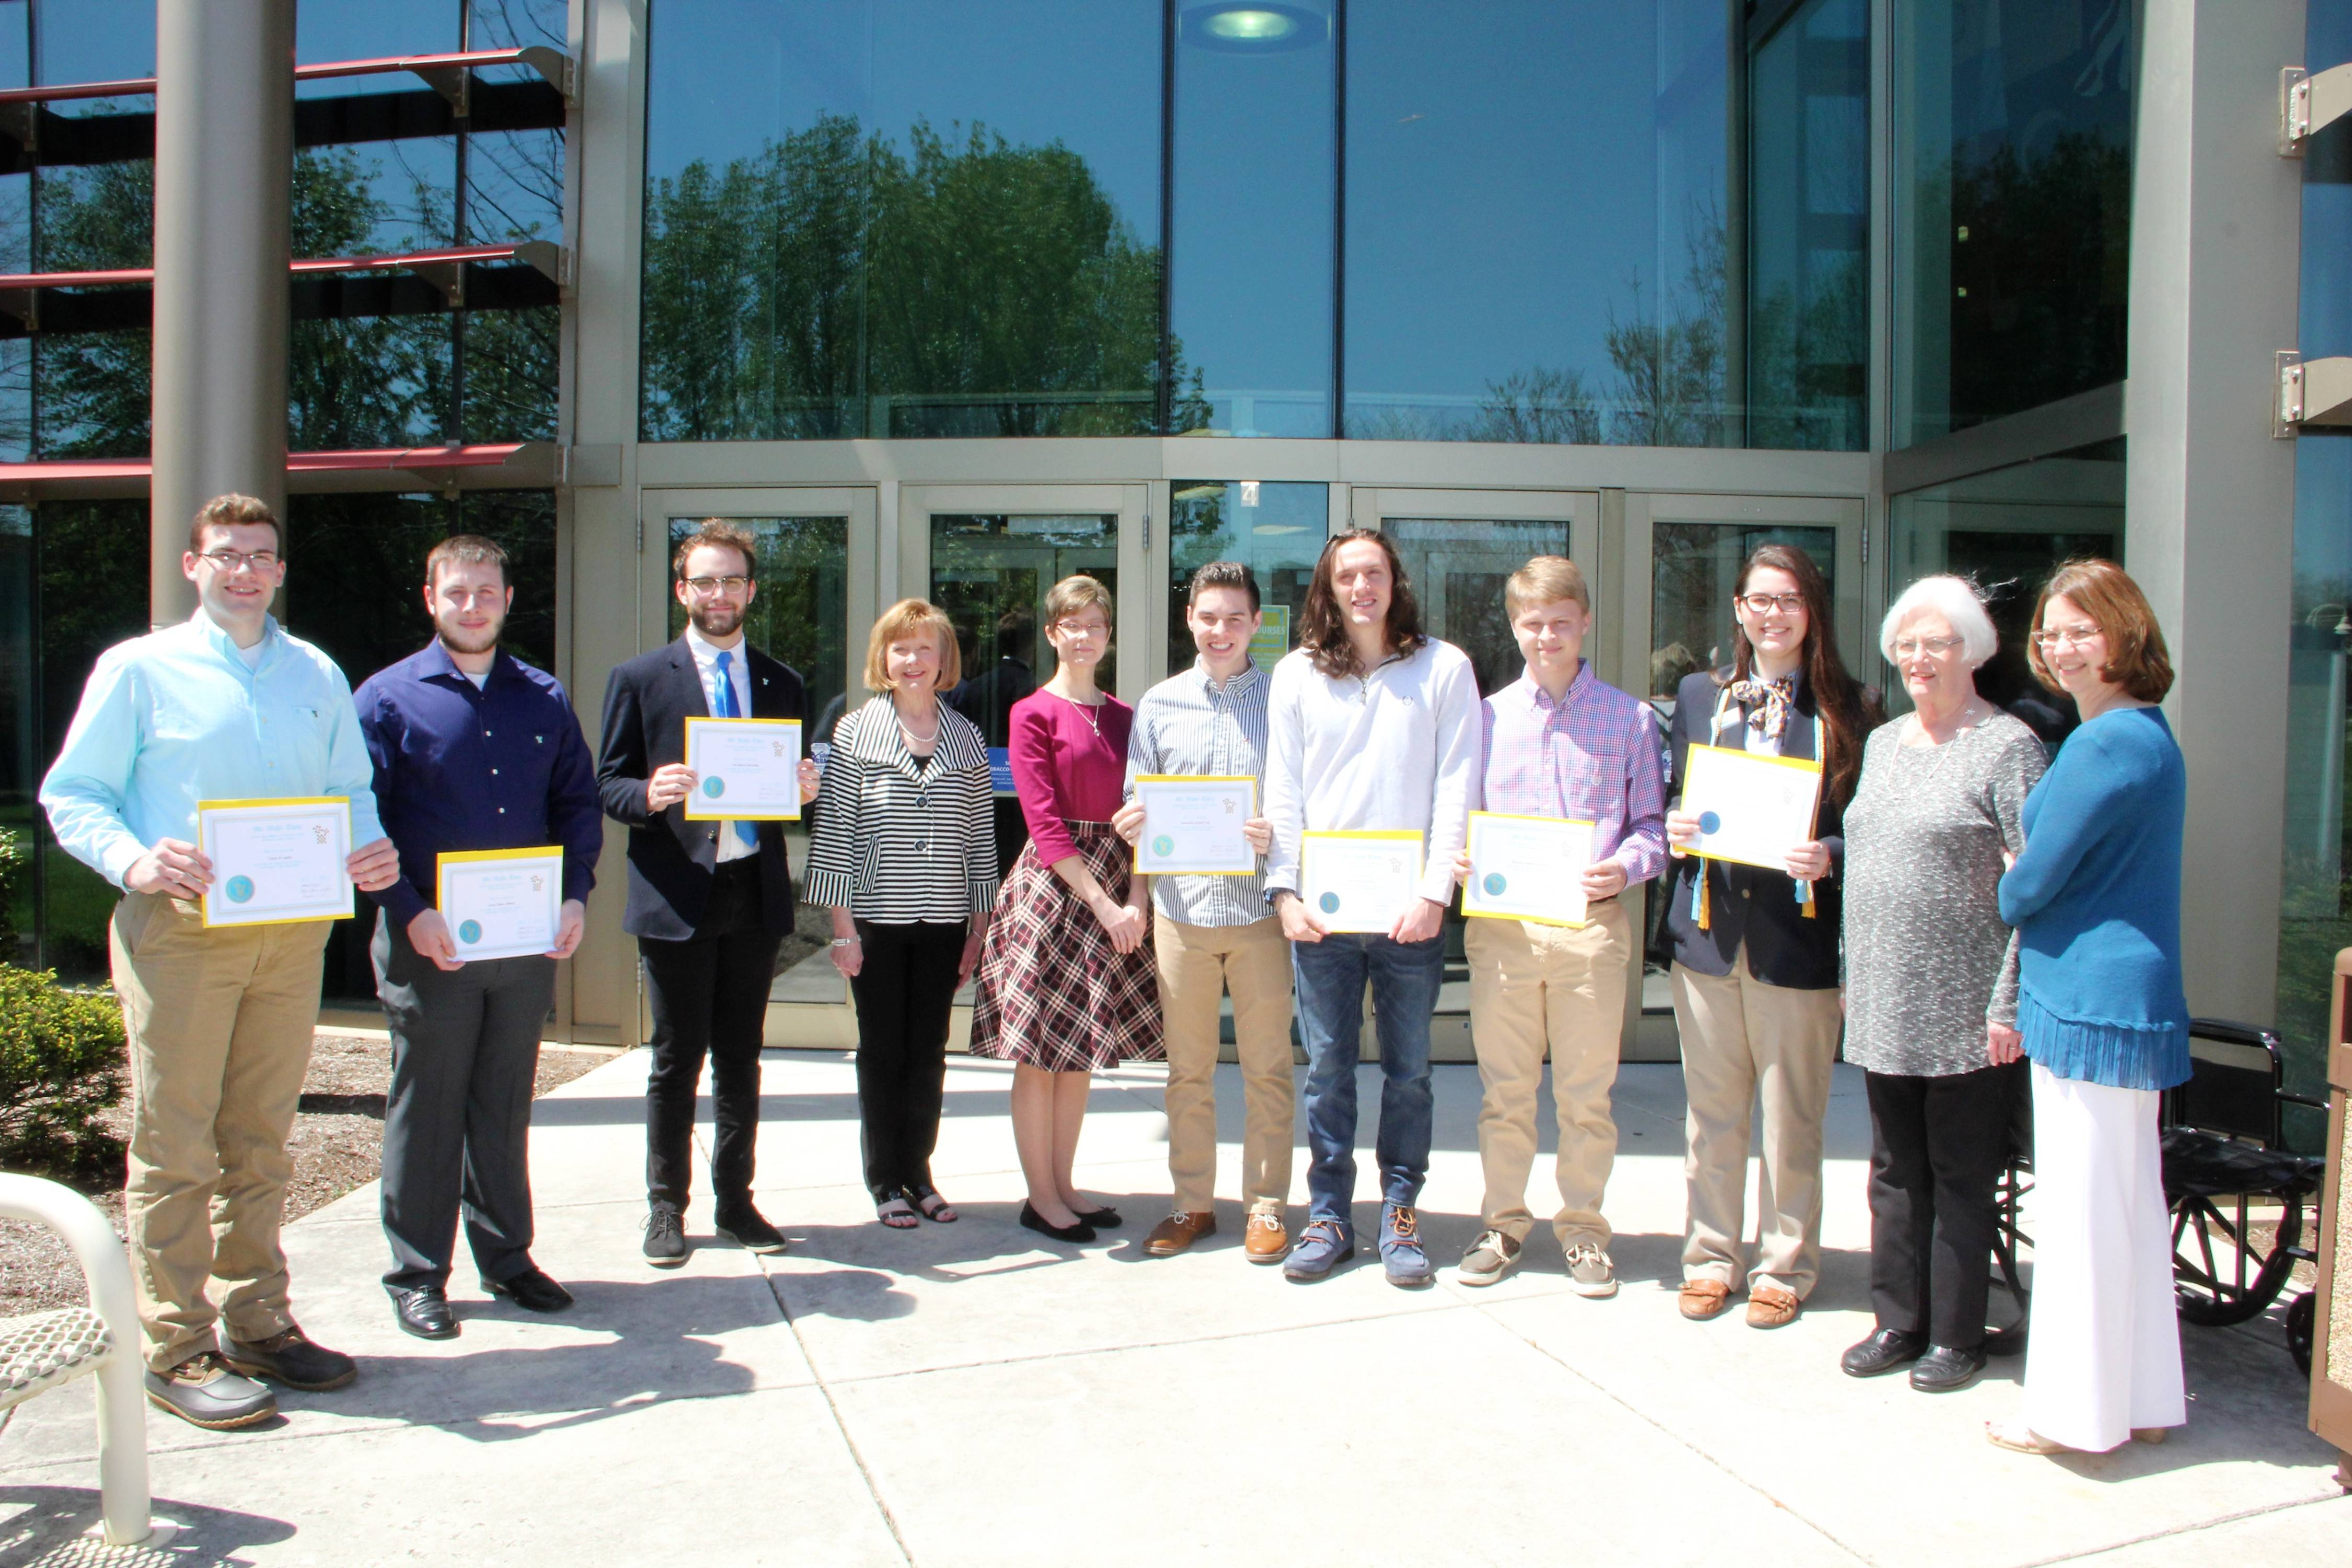 mu alpha theta inducted students standing outside of scc building holding up certificates